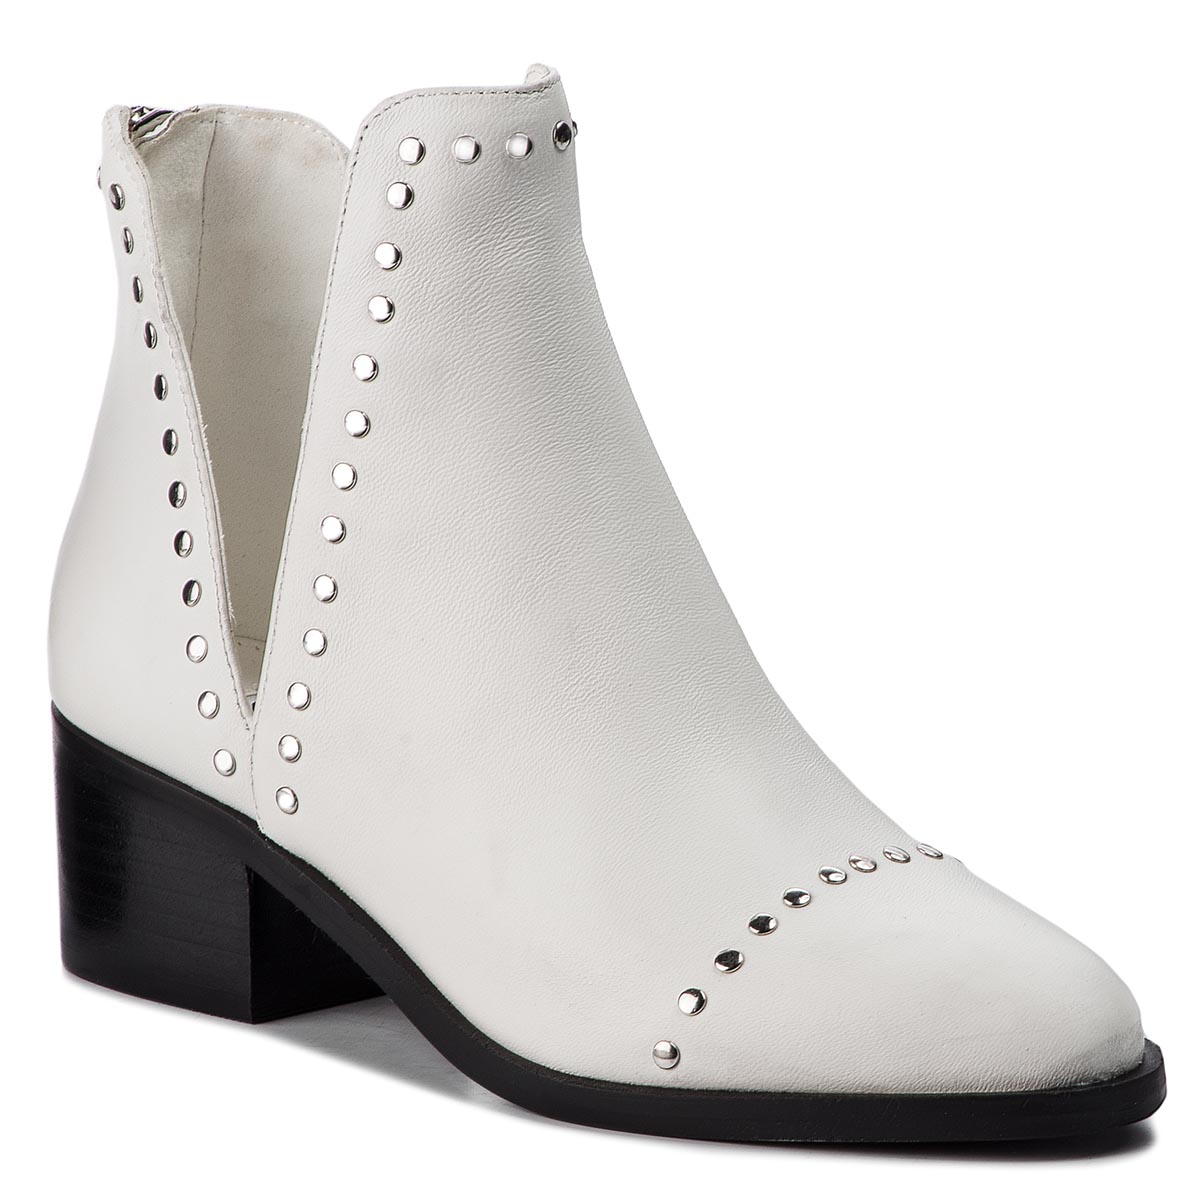 Botine STEVE MADDEN - Conspire Ankleboot SM11000064-03001-107 White Leather